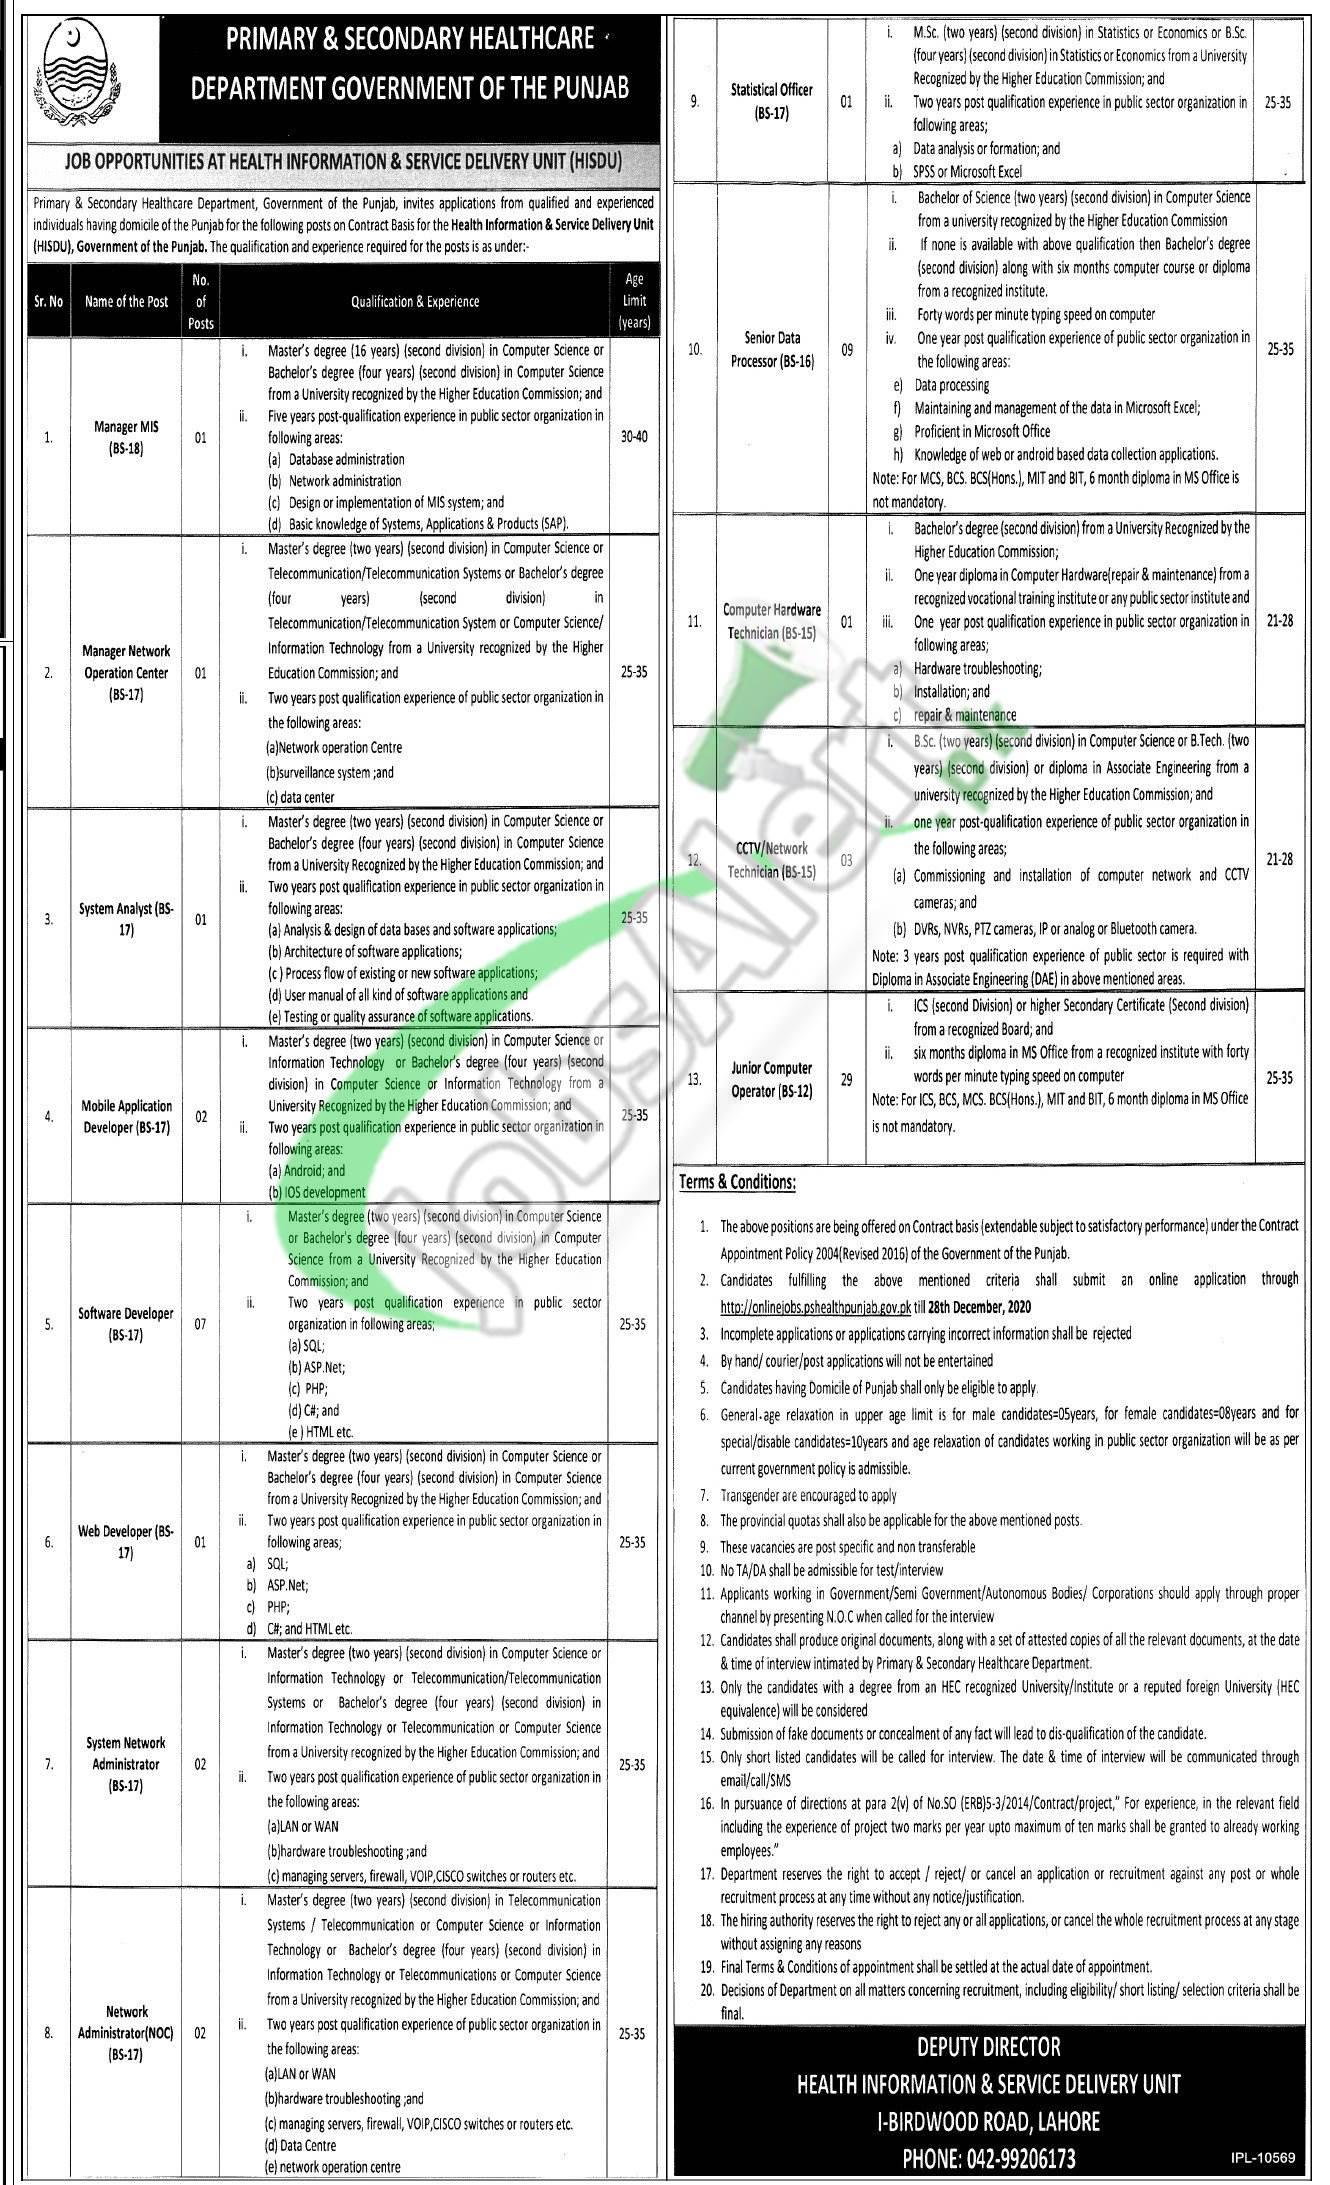 Health Information & Service Delivery Unit Jobs